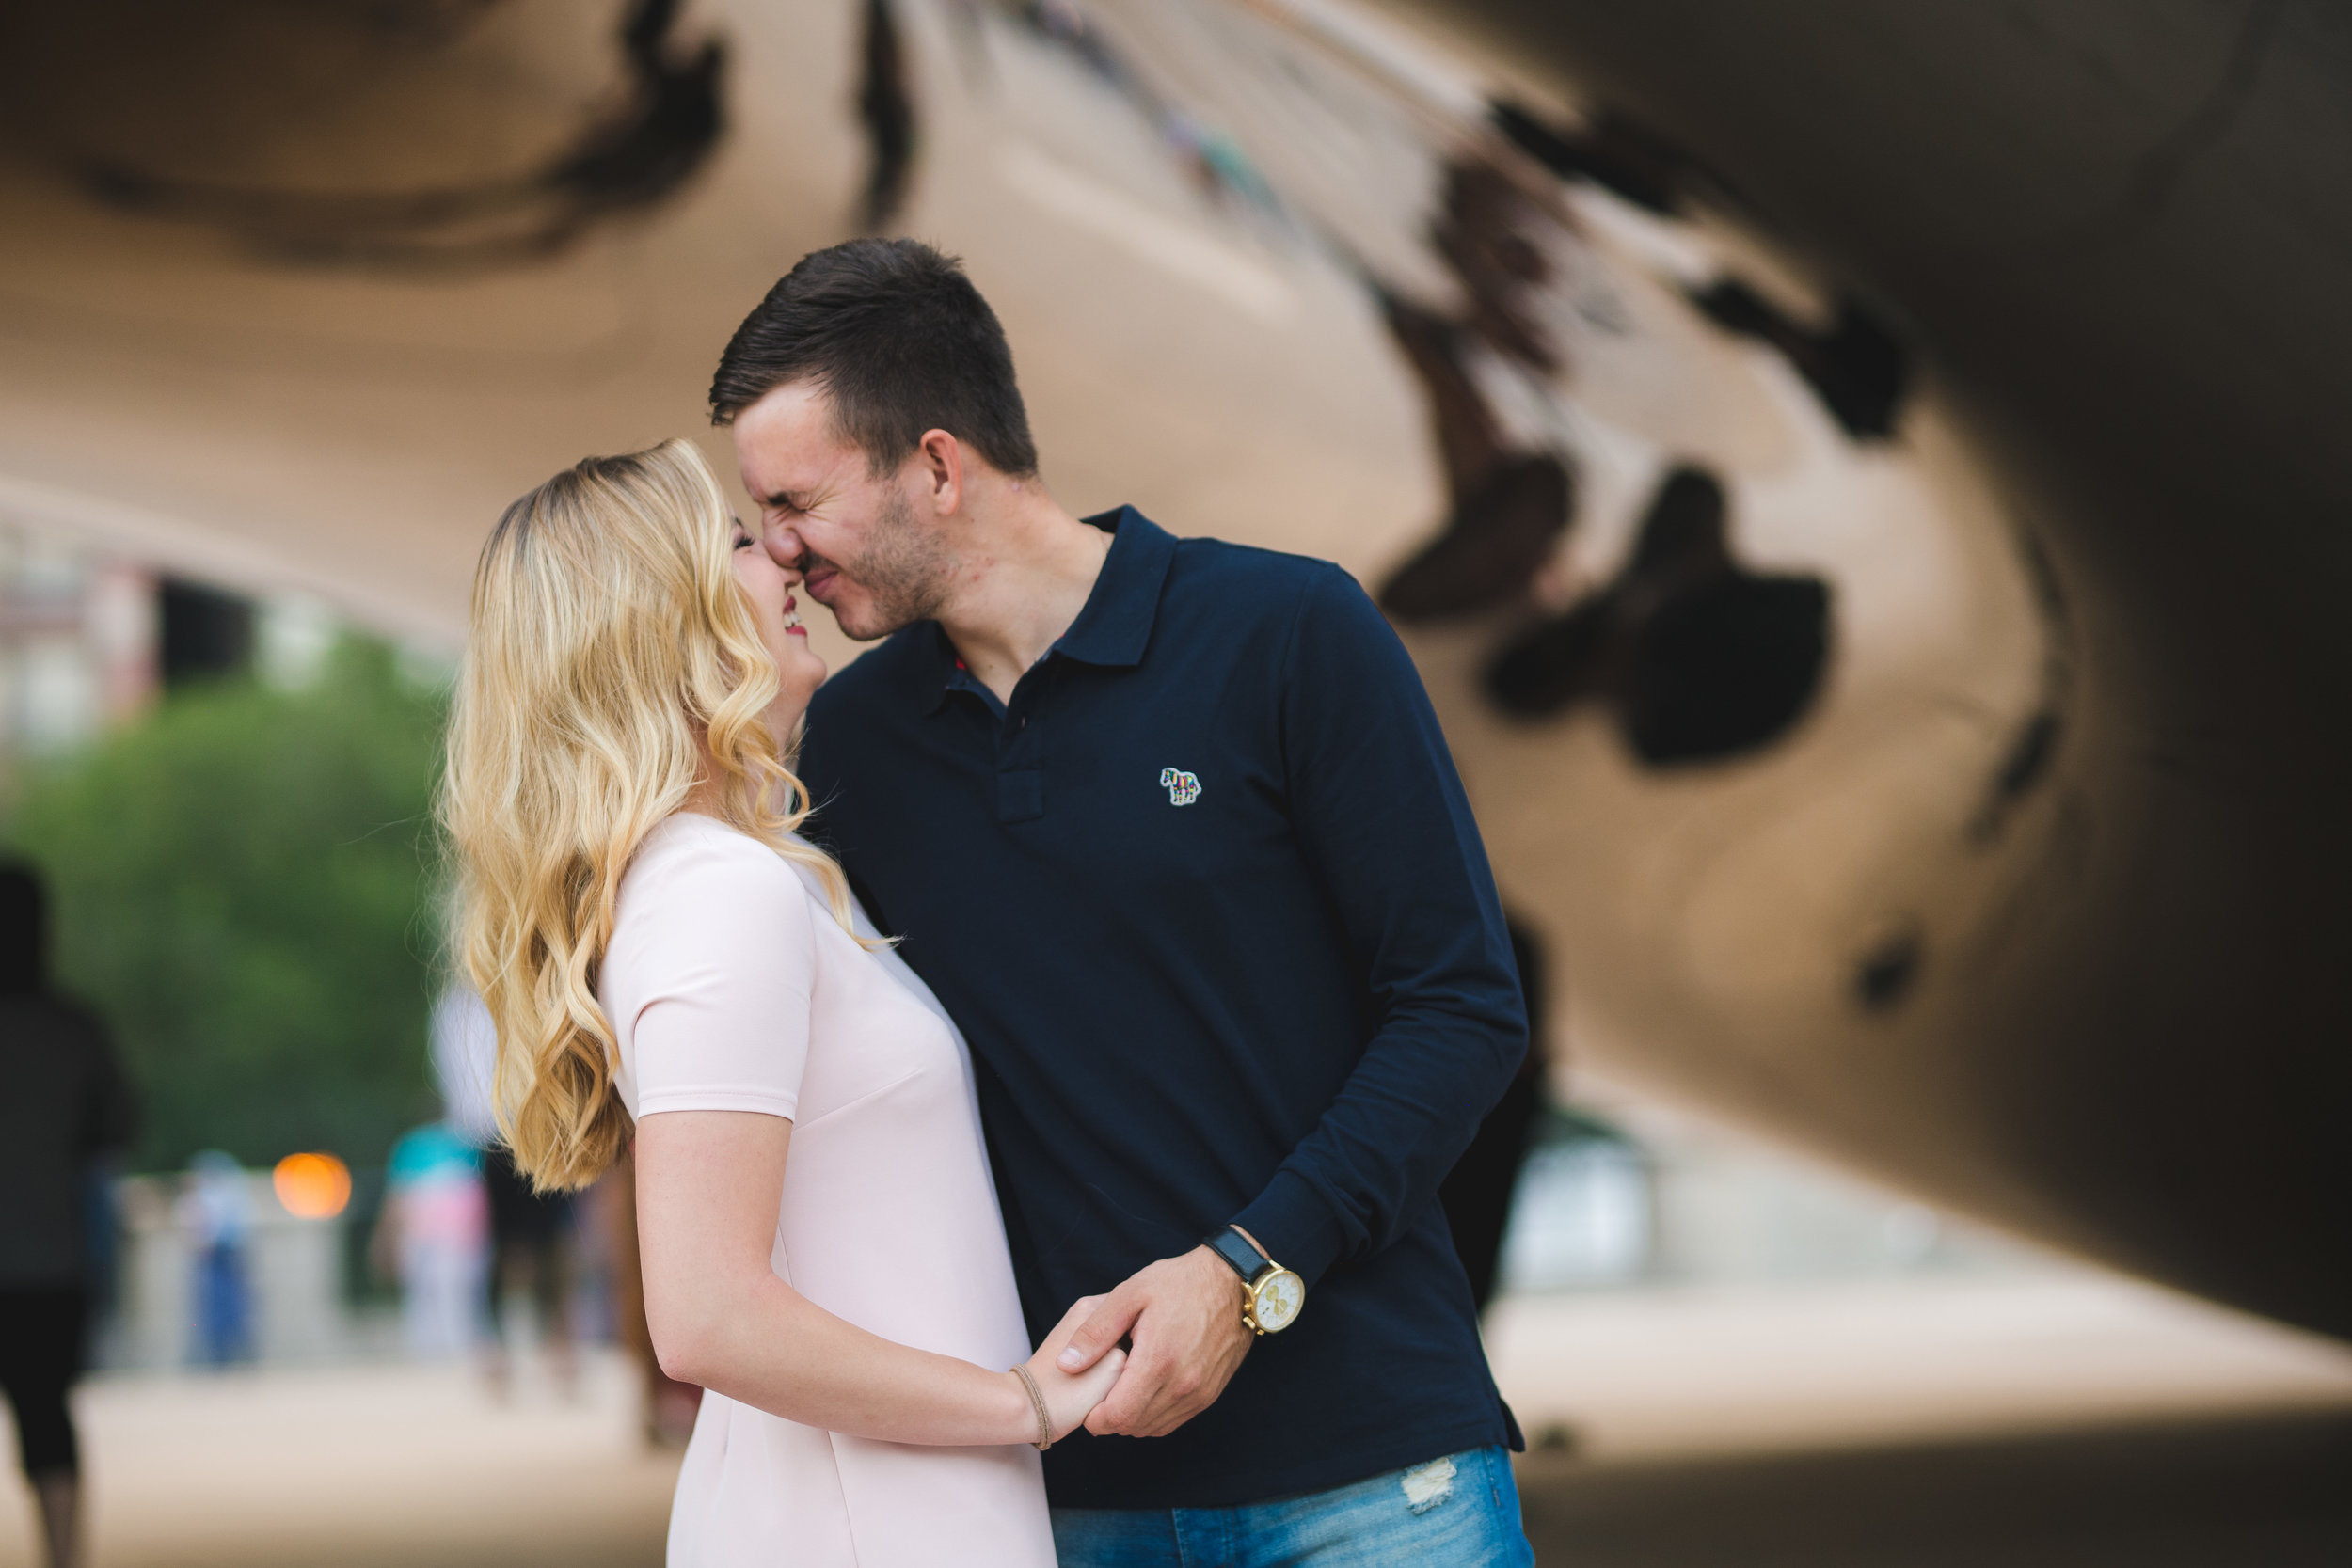 Engagement photographer in Chicago-3.jpg